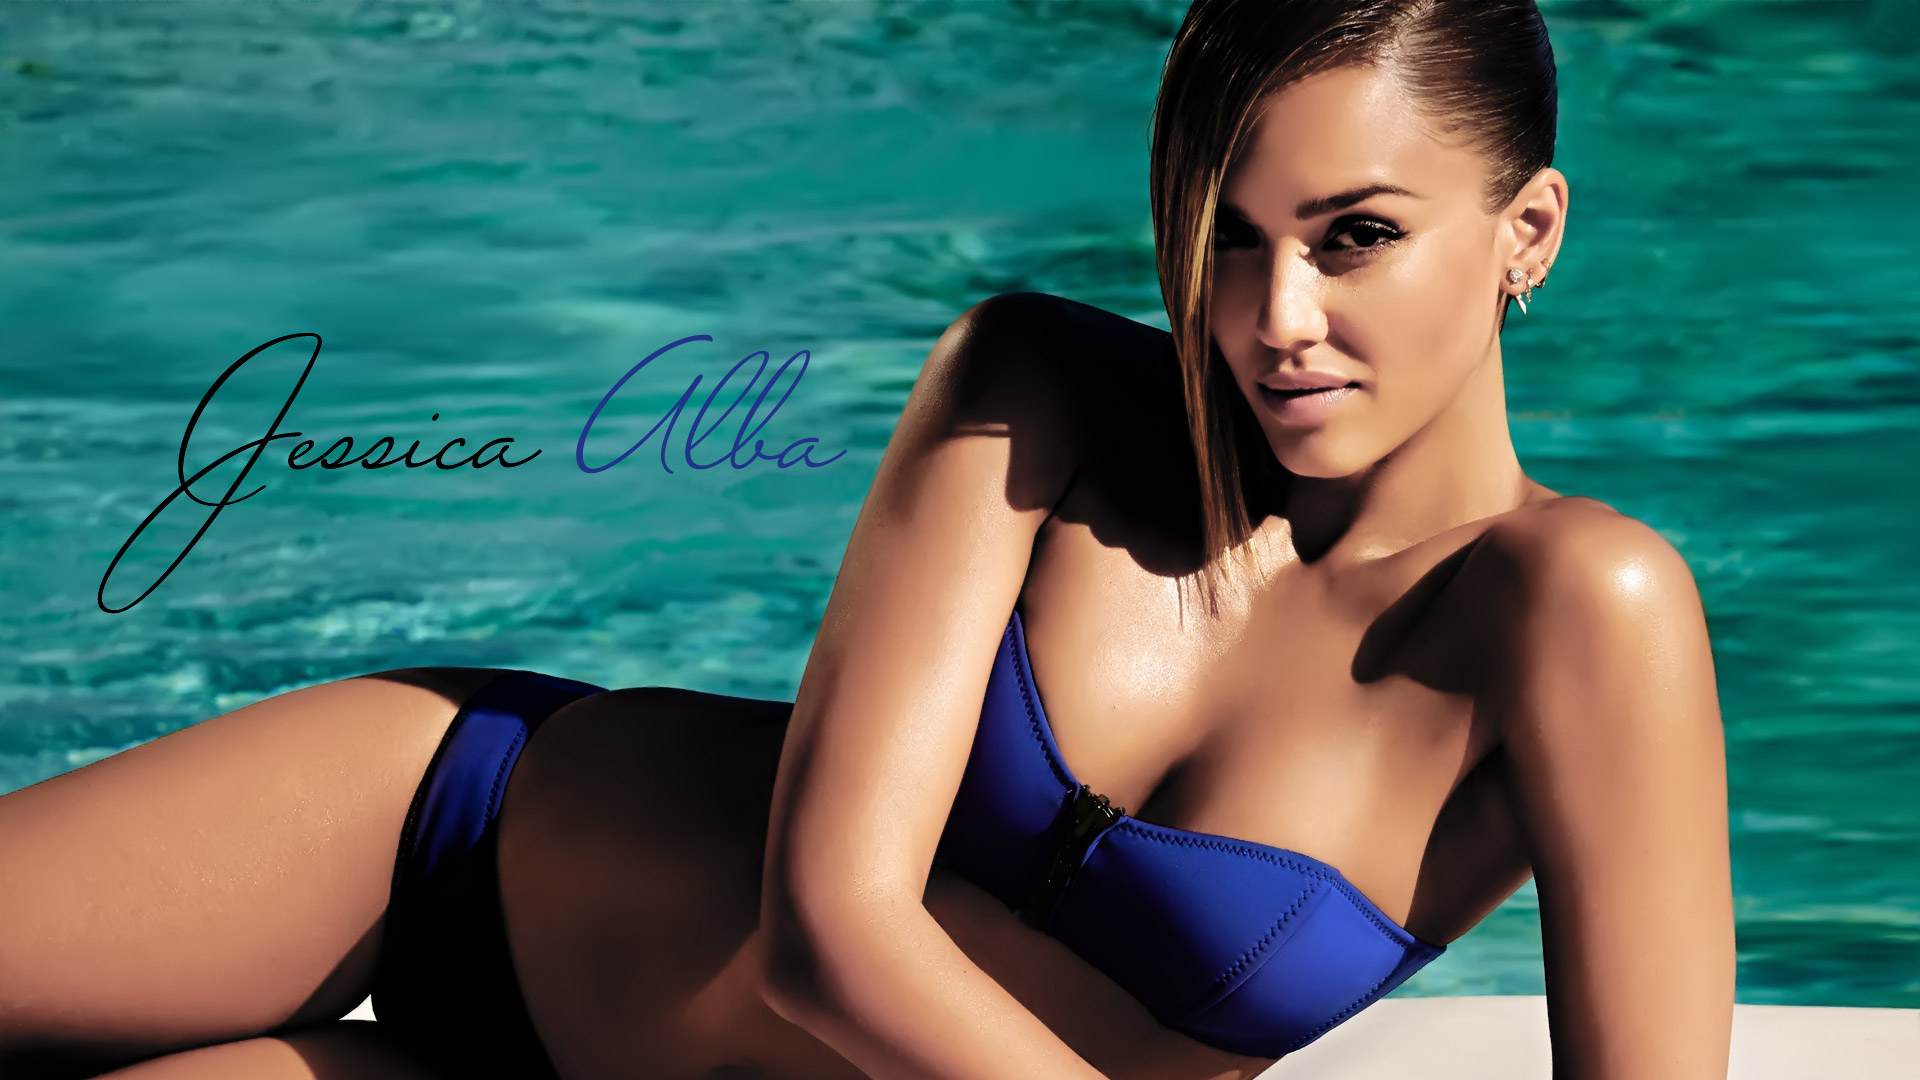 download jessica alba hot hd wallpapers gallery